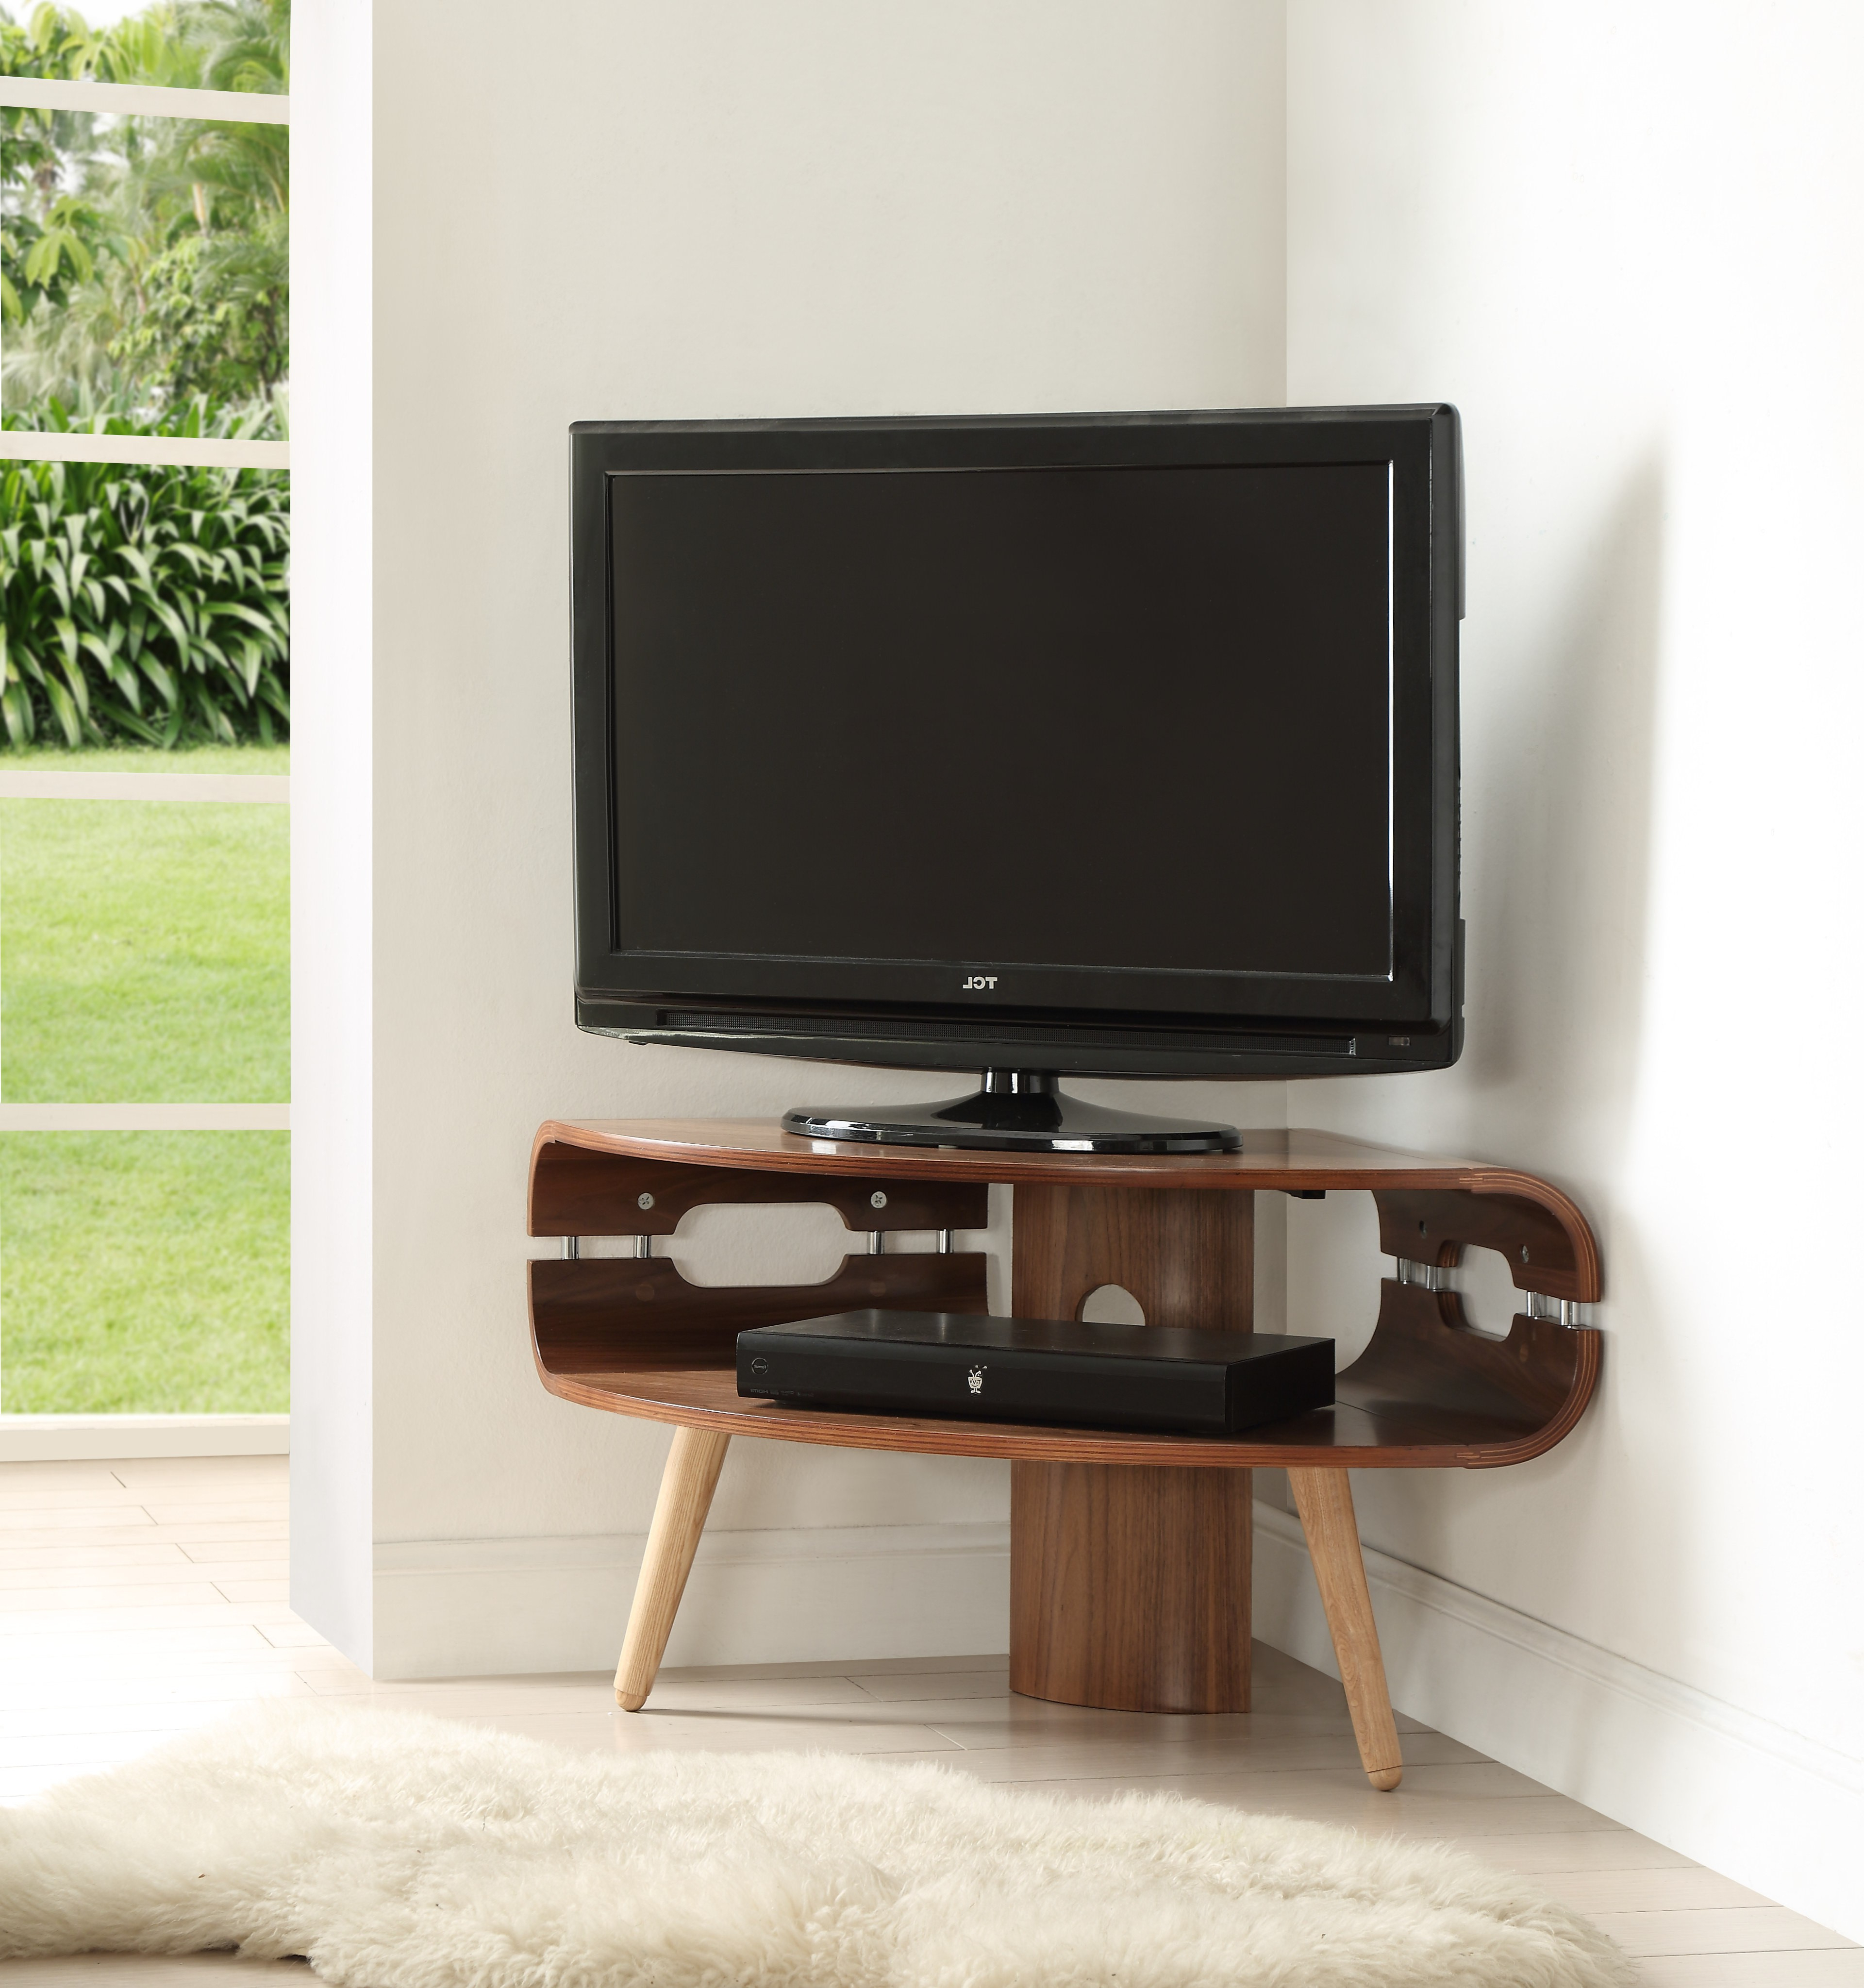 Most Popular Oak Tv Stand Walmart Solid Wood Stands For Flat Screens Light Pertaining To Corner Tv Cabinets For Flat Screens (Gallery 2 of 20)